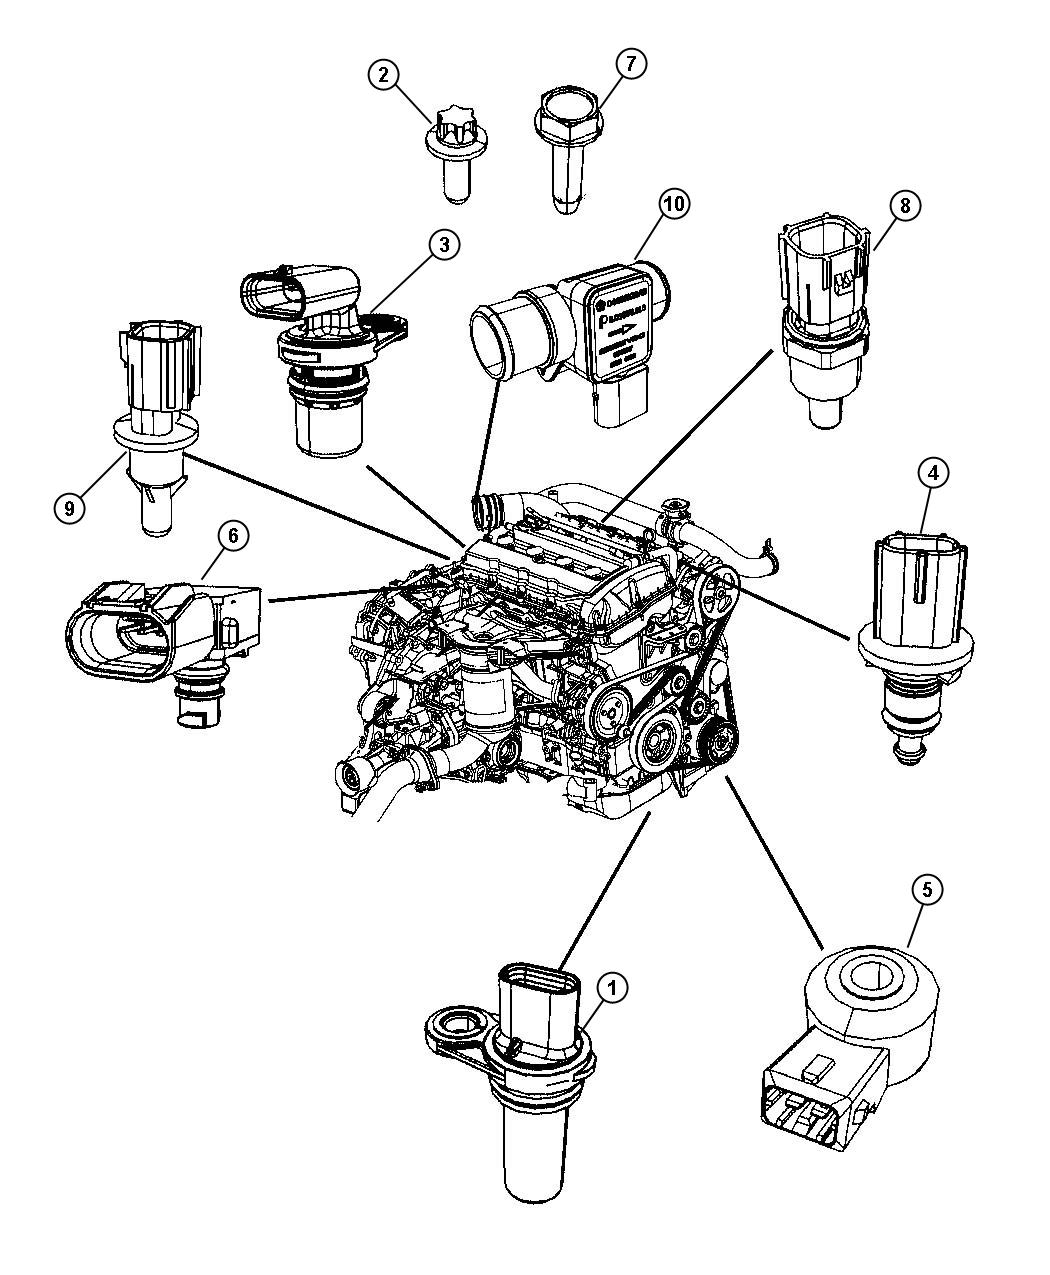 32 Dodge Caliber Serpentine Belt Diagram